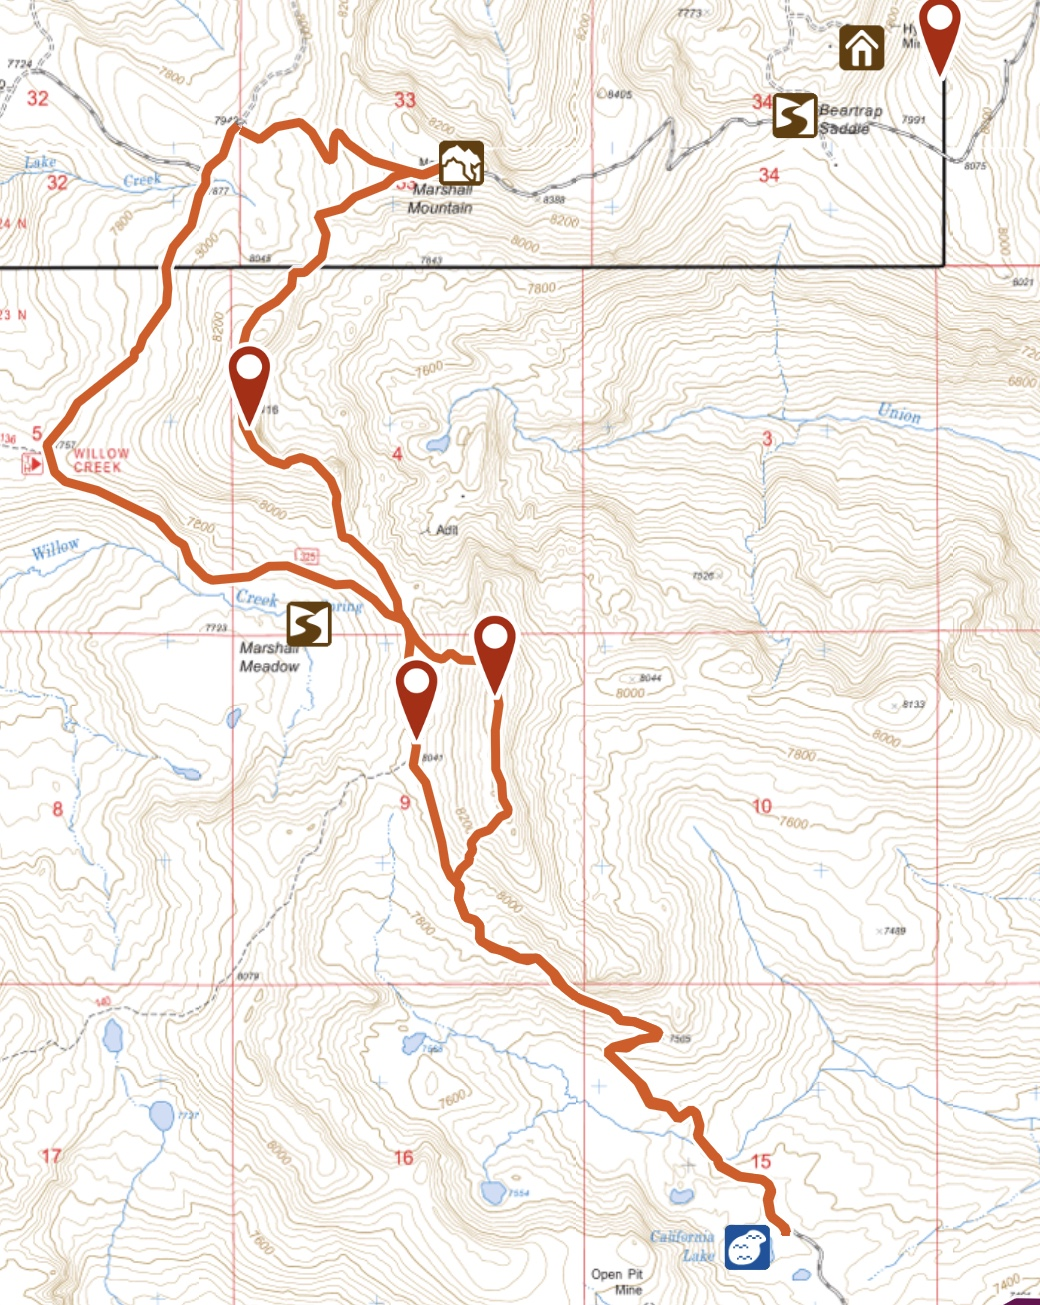 My GPS track for Marshall Mountain and the two peaks with an elevation of 8,460 feet. I highly recommend this scenic ridge walk.